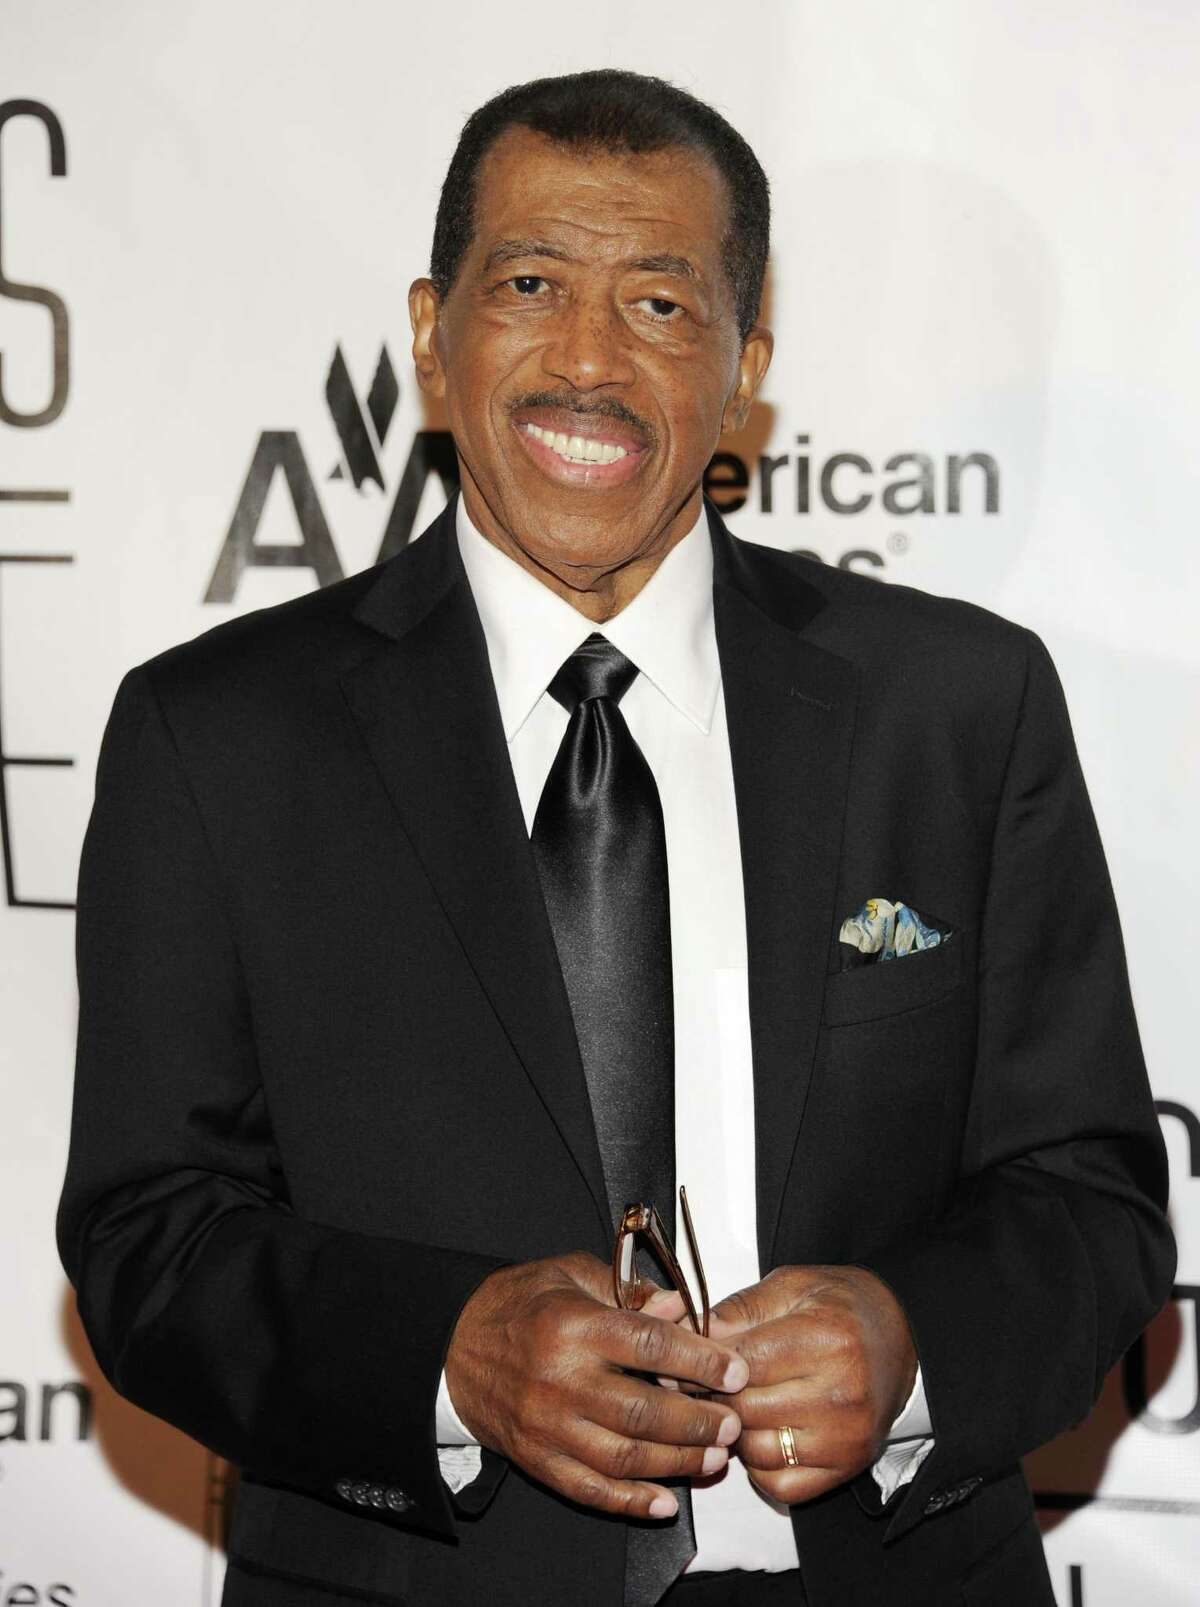 """FILE - In this June 14, 2012, file photo, Towering Performance Award inductee Ben E. King arrives at the 2012 Songwriters Hall of Fame induction and awards gala in New York. King, singer of such classics as """"Stand By Me,"""" """"There Goes My Baby"""" and """"Spanish Harlem,"""" died Thursday, April 30, 2015, publicist Phil Brown told The Associated Press. He was 76."""